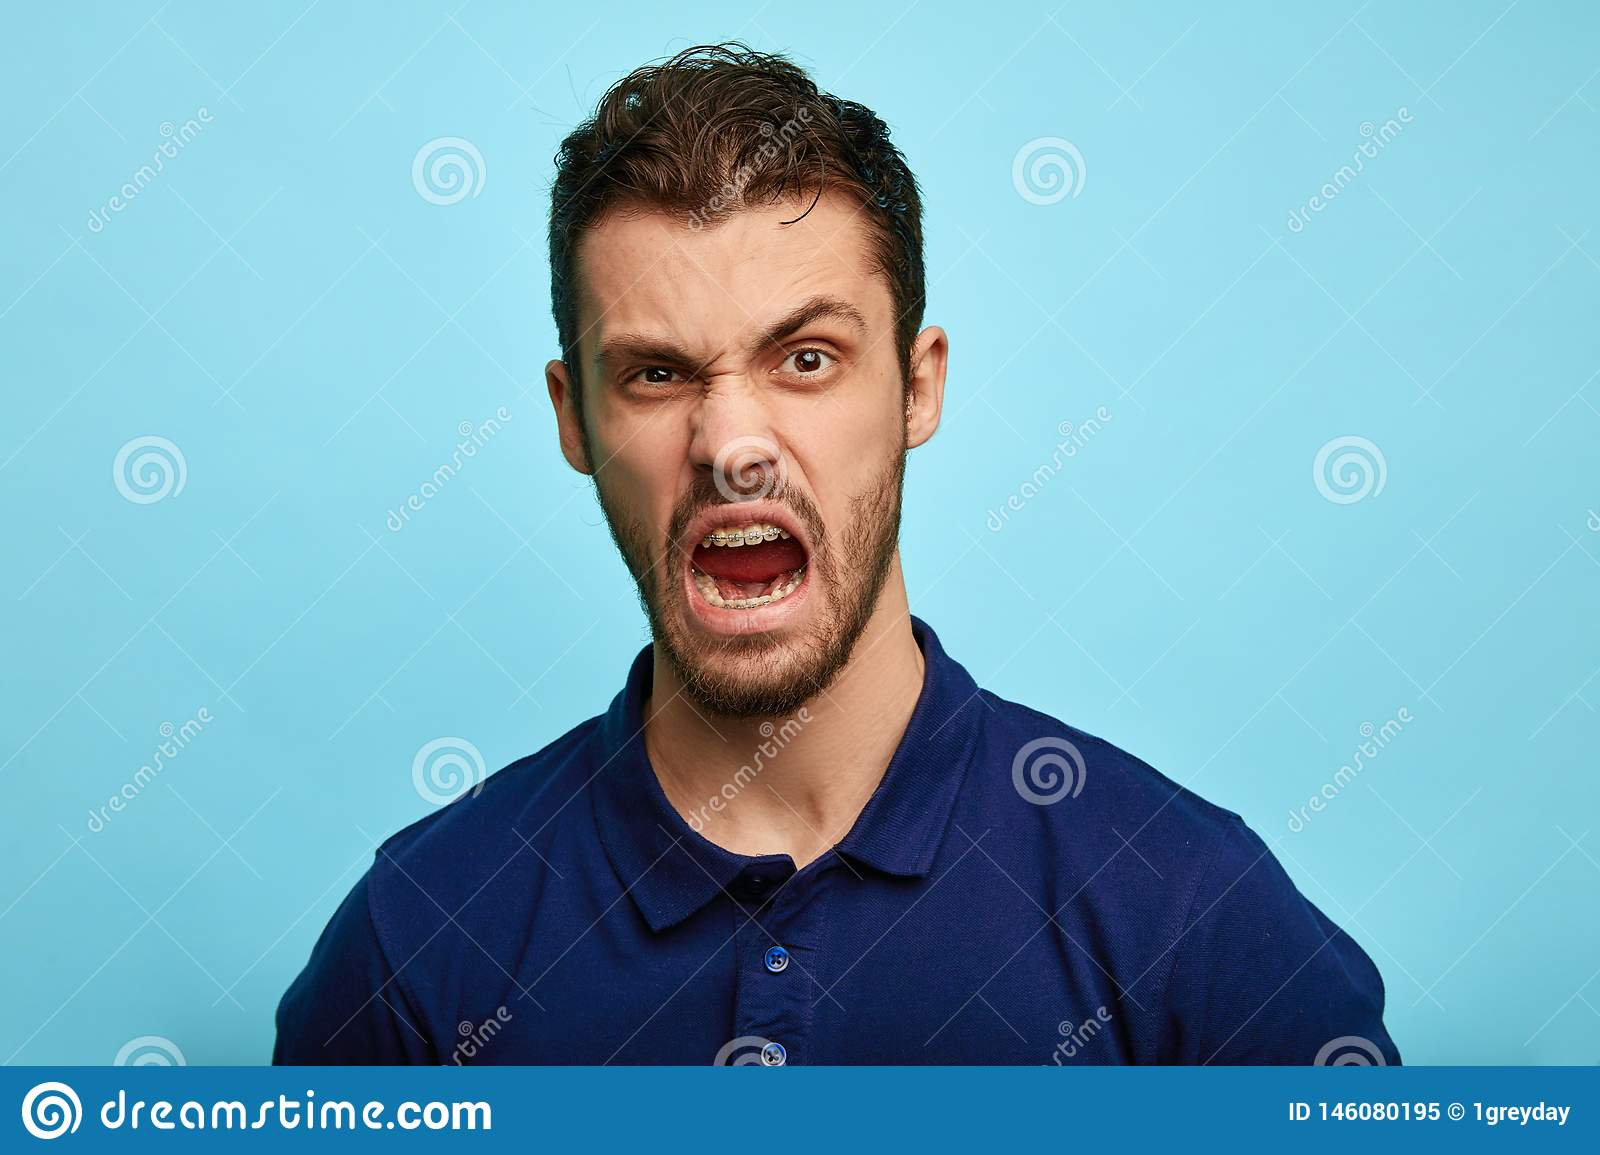 Frustrated, enraged man with grumpy grimace on his face,